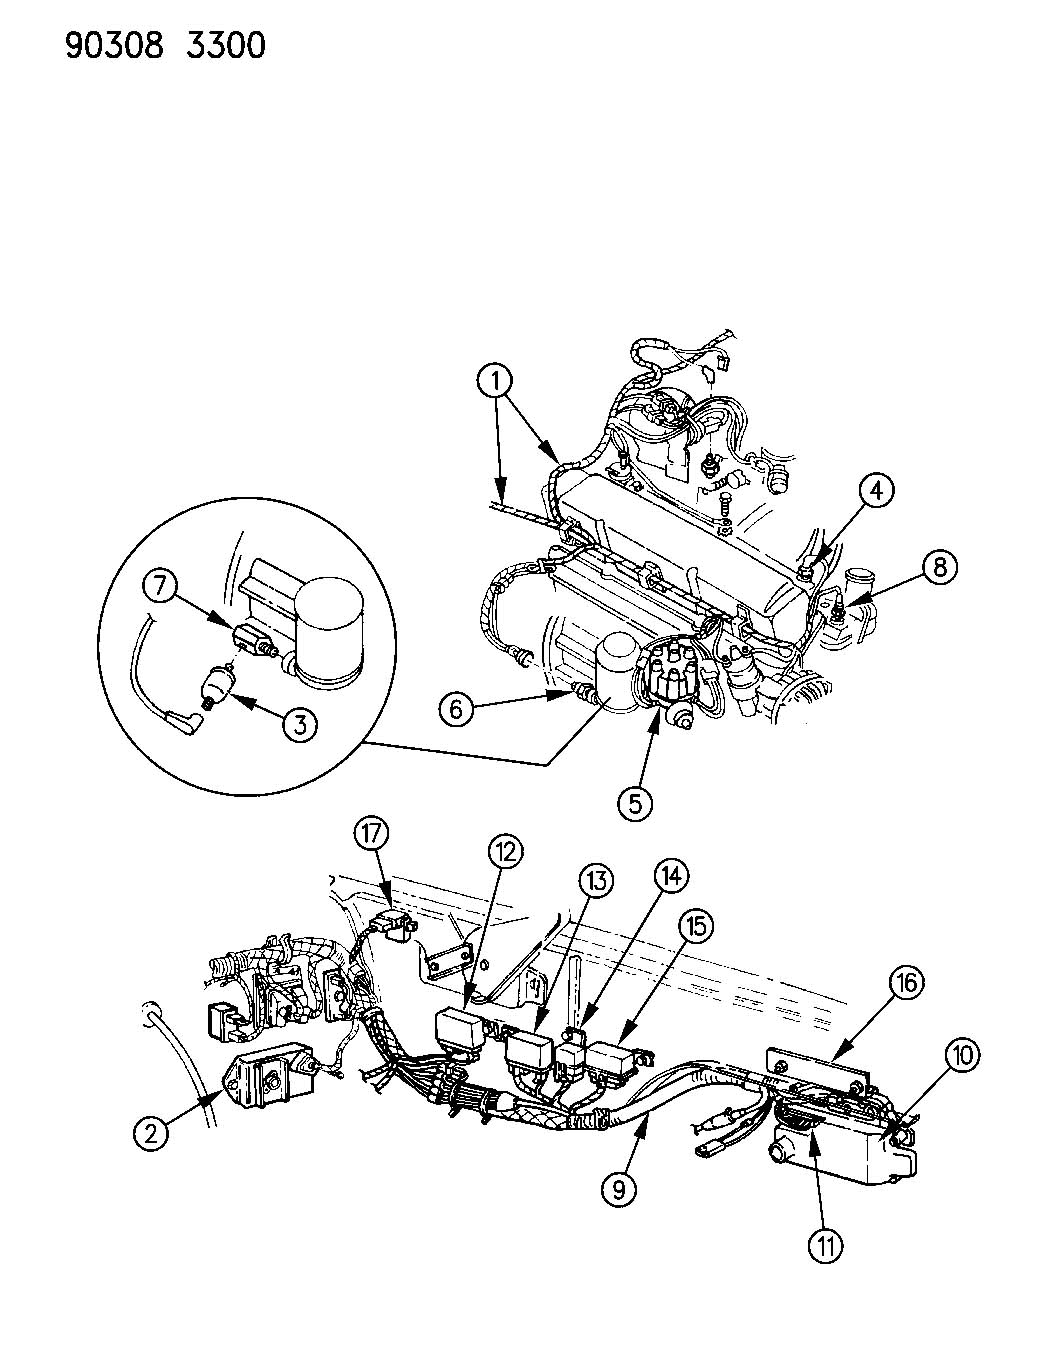 2002 porsche 911 timing chain diagram together with geo metro engine diagram in addition 1995 besides